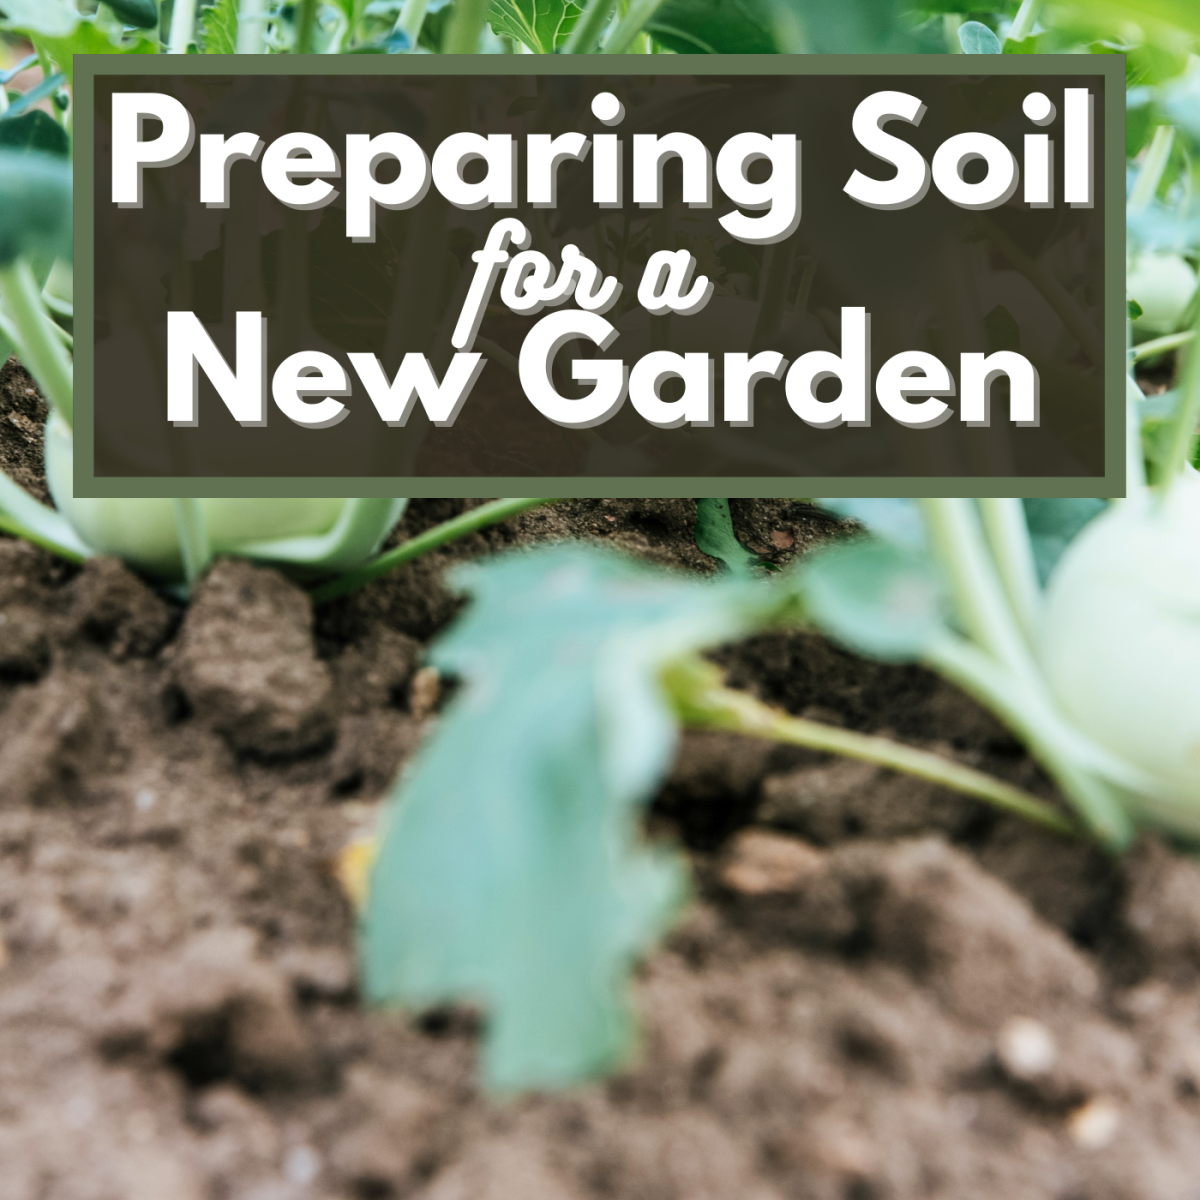 Step-by-step guide to preparing soil for a new gardening season.